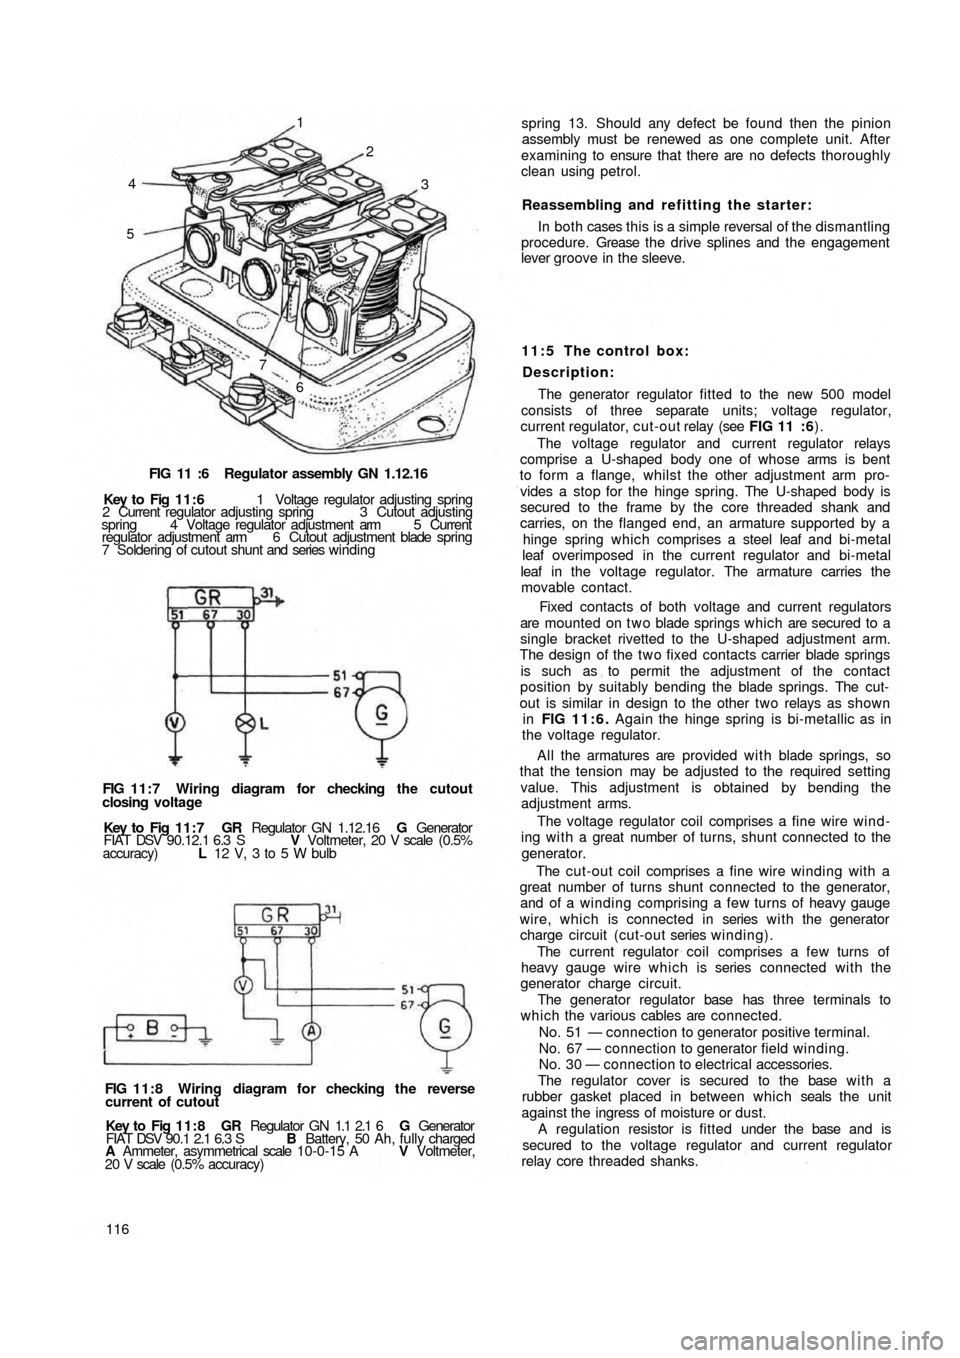 w960_4482 108 bulb fiat 500 1969 1 g workshop manual 1969 fiat 500 wiring diagram at crackthecode.co